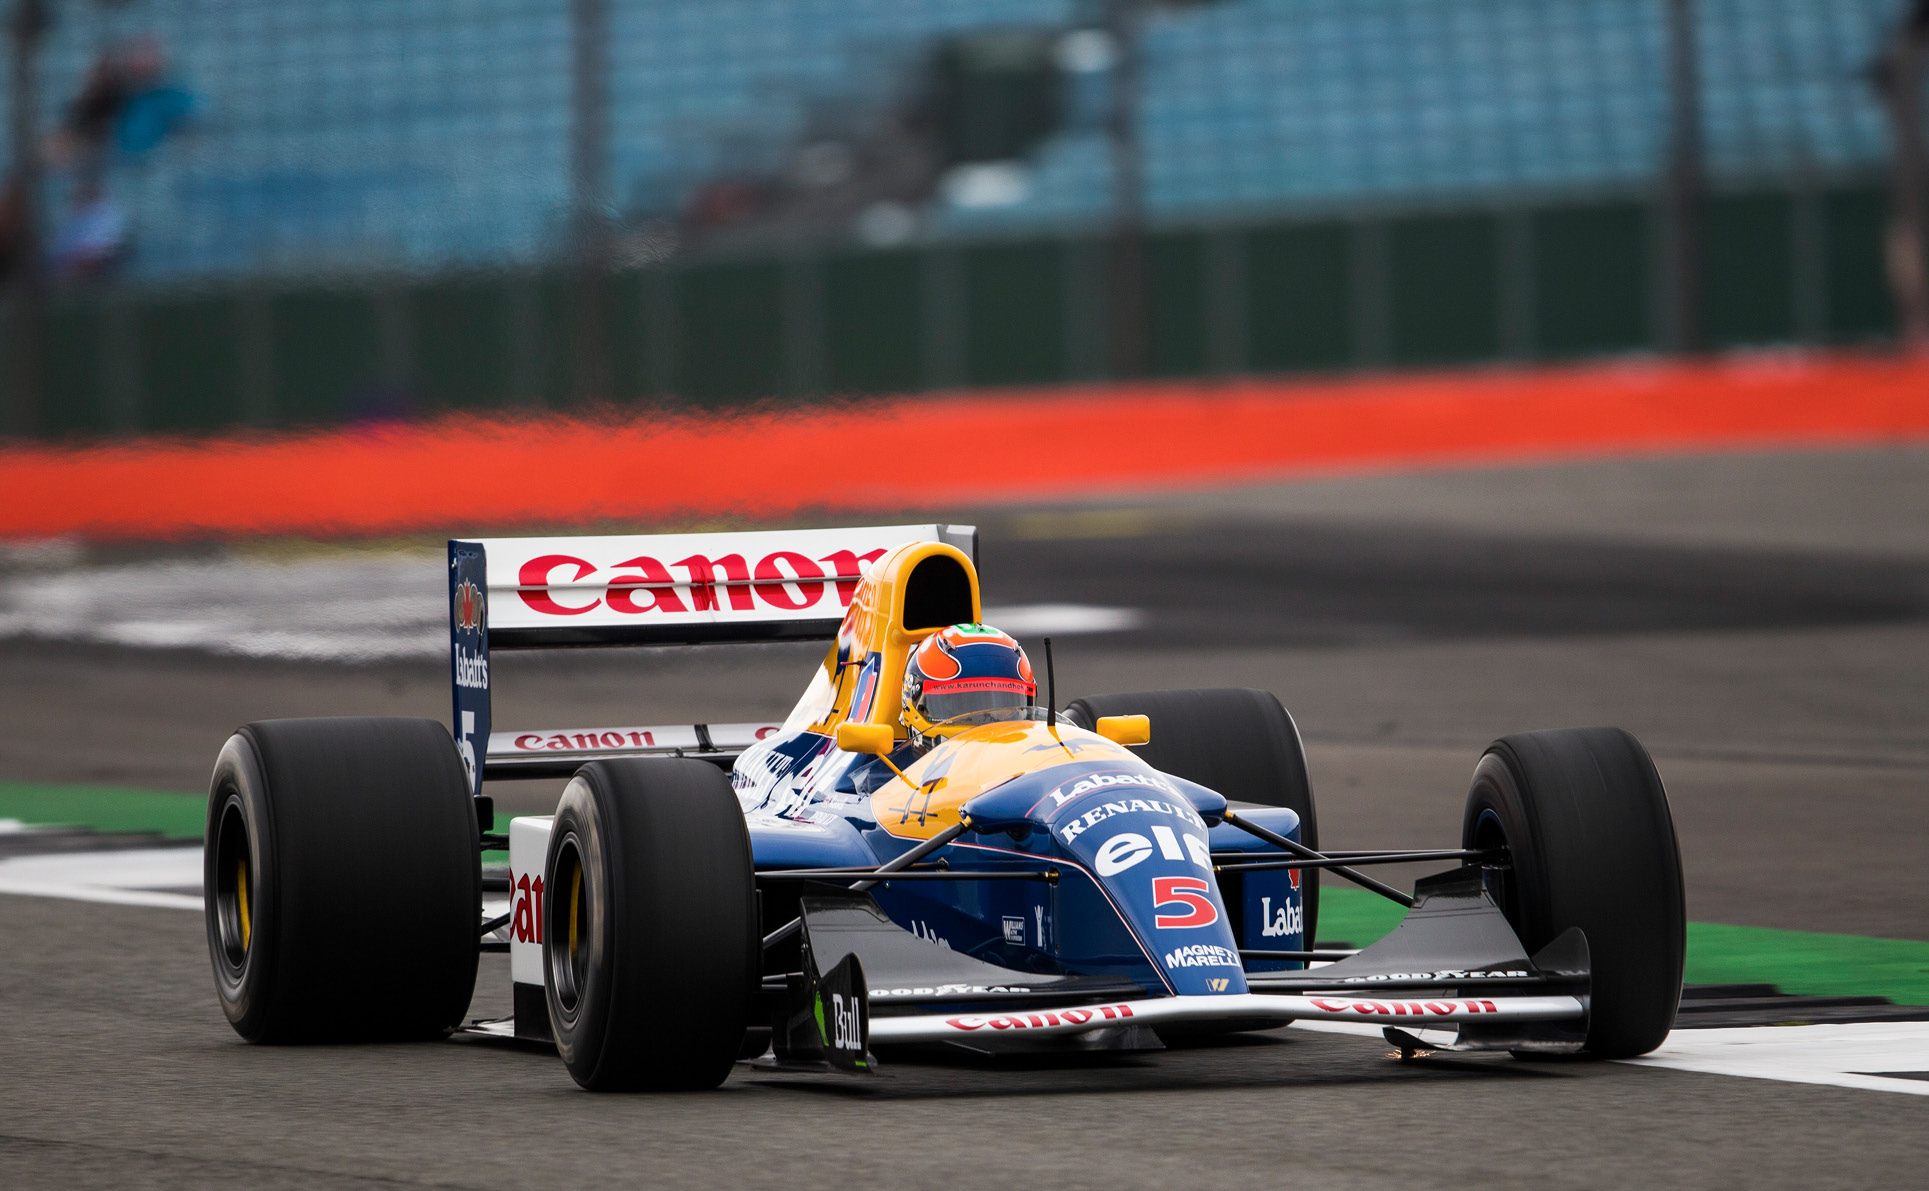 Karun Chandhok has driven many different types of car around Silverstone, including an HRT F1 car and this Williams FW14B